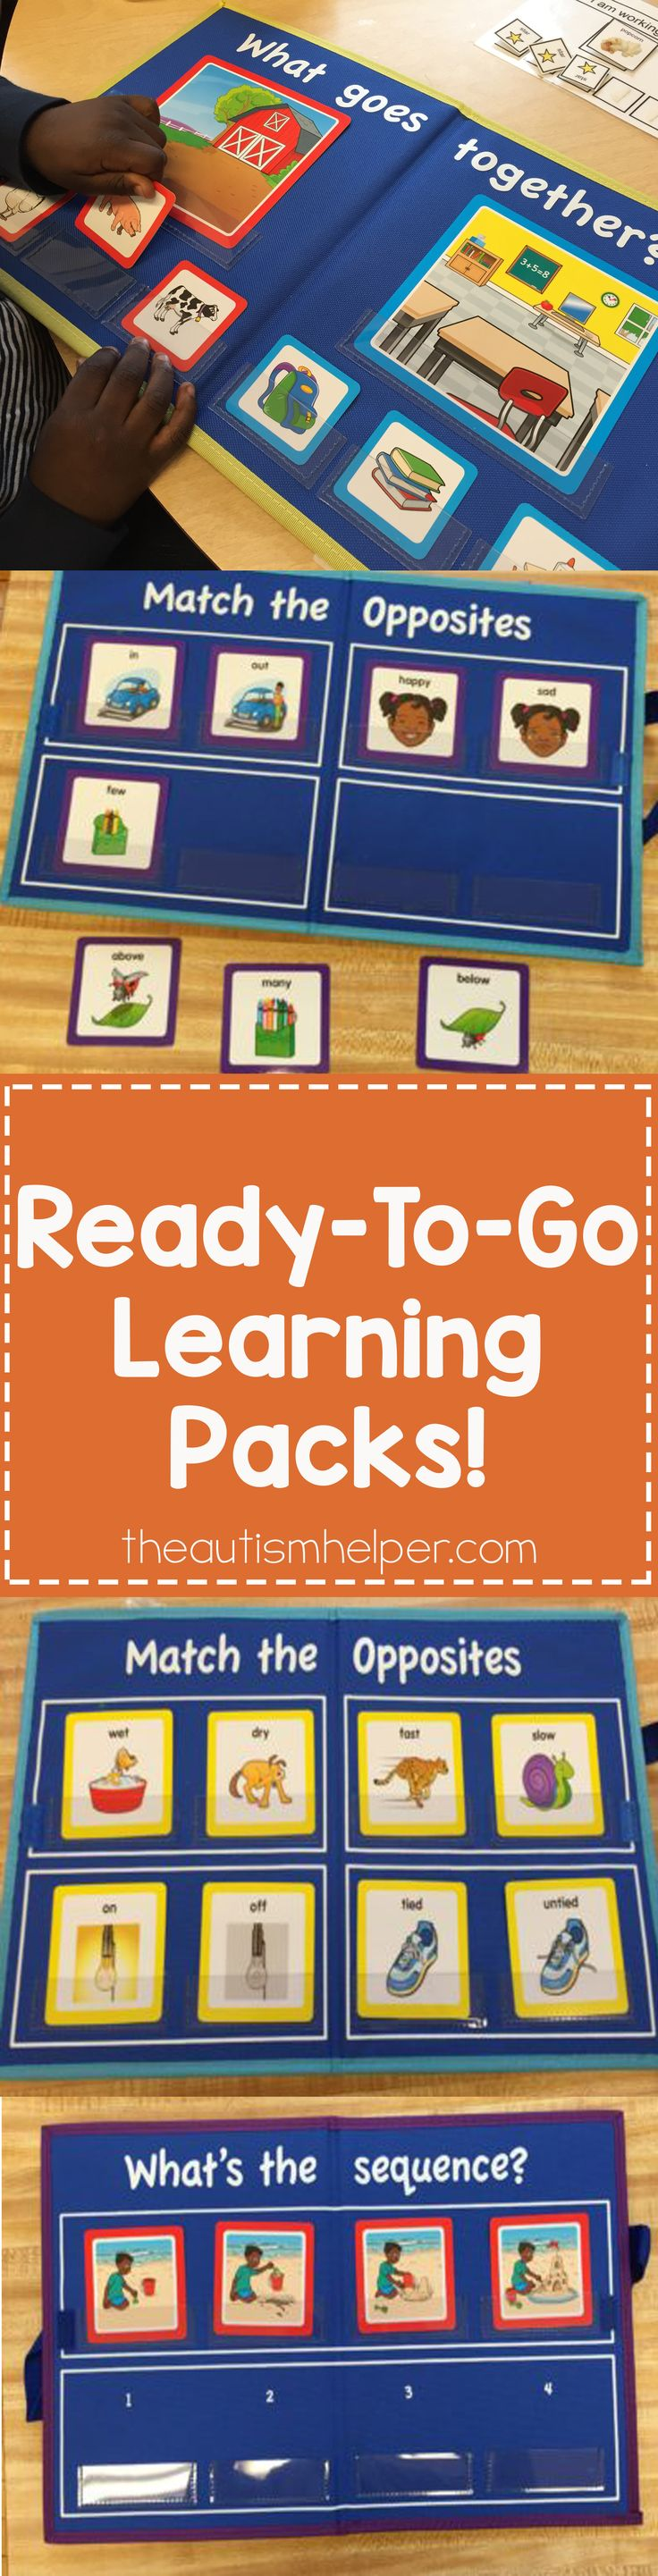 Lakeshore Learning's Ready-To-Go Learning Packs are convenient, great to use in therapy & work on multiple concepts in Sarah the Speech Helper's groups. So great when running school to school! From theautismhelper.com